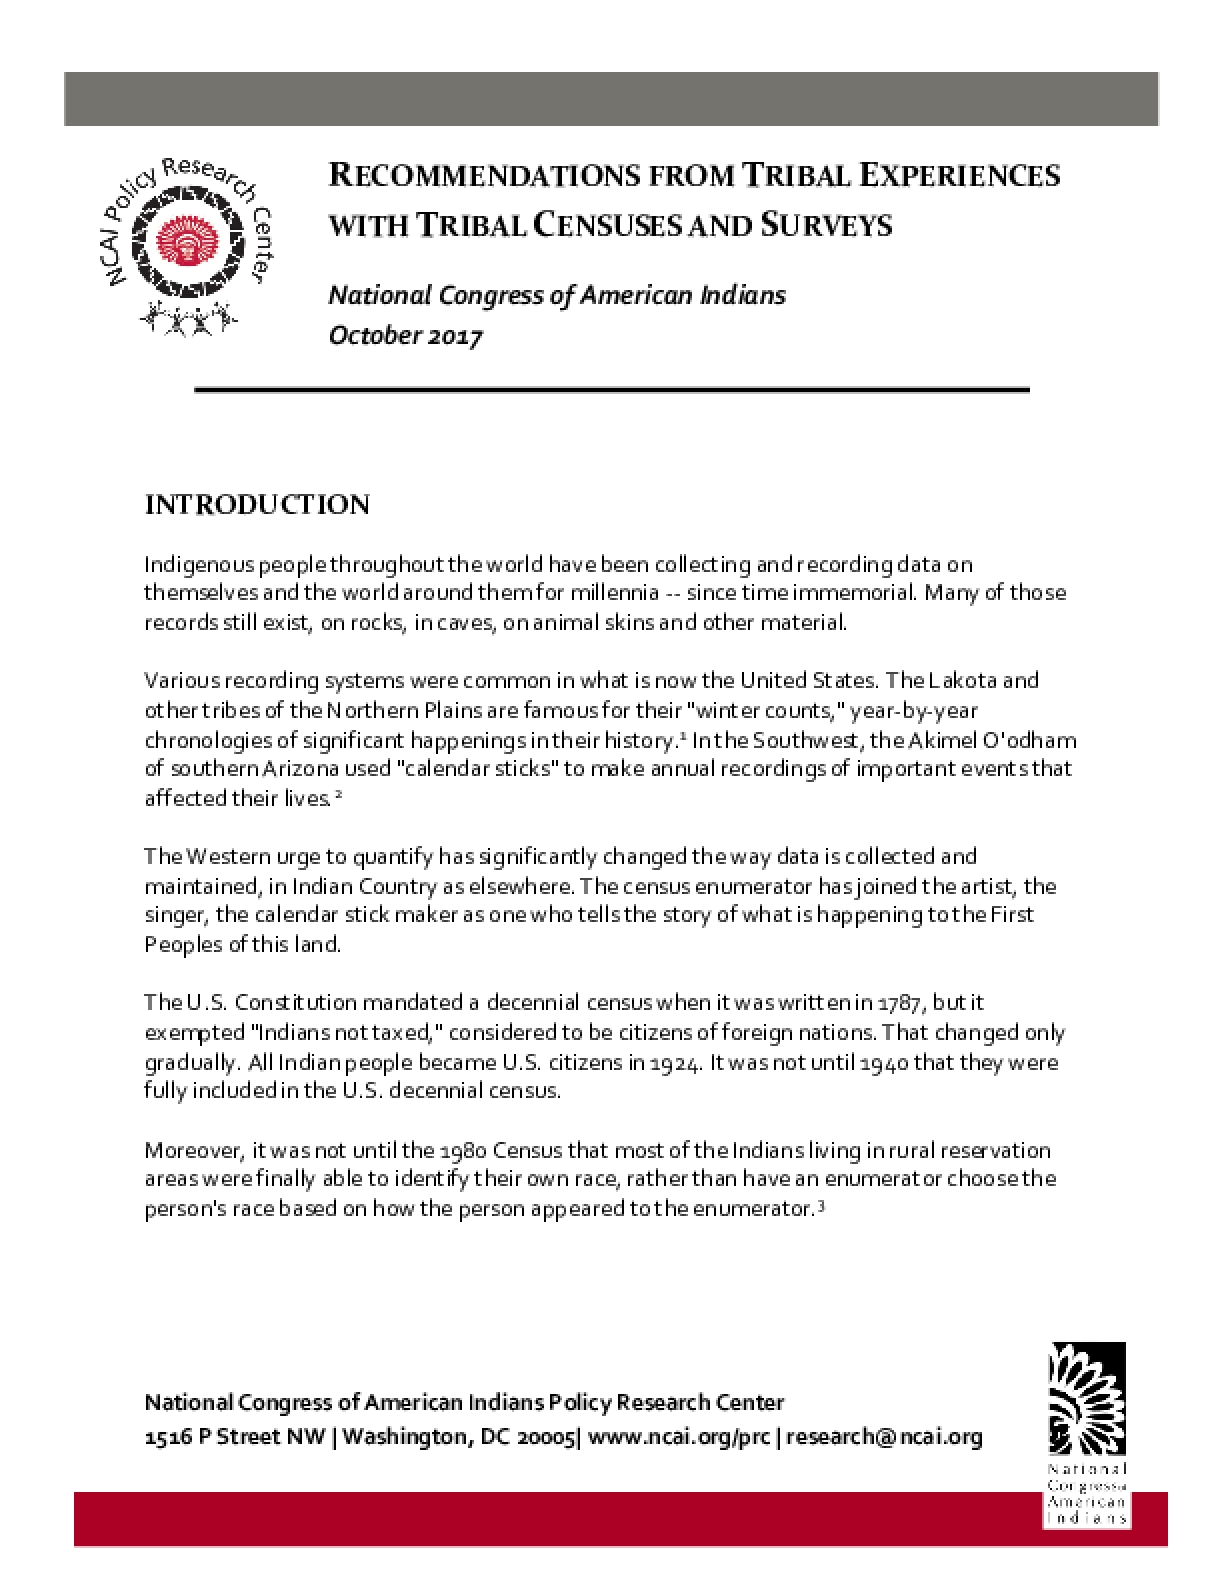 Recommendations from Tribal Experiences with Tribal Censuses and Surveys